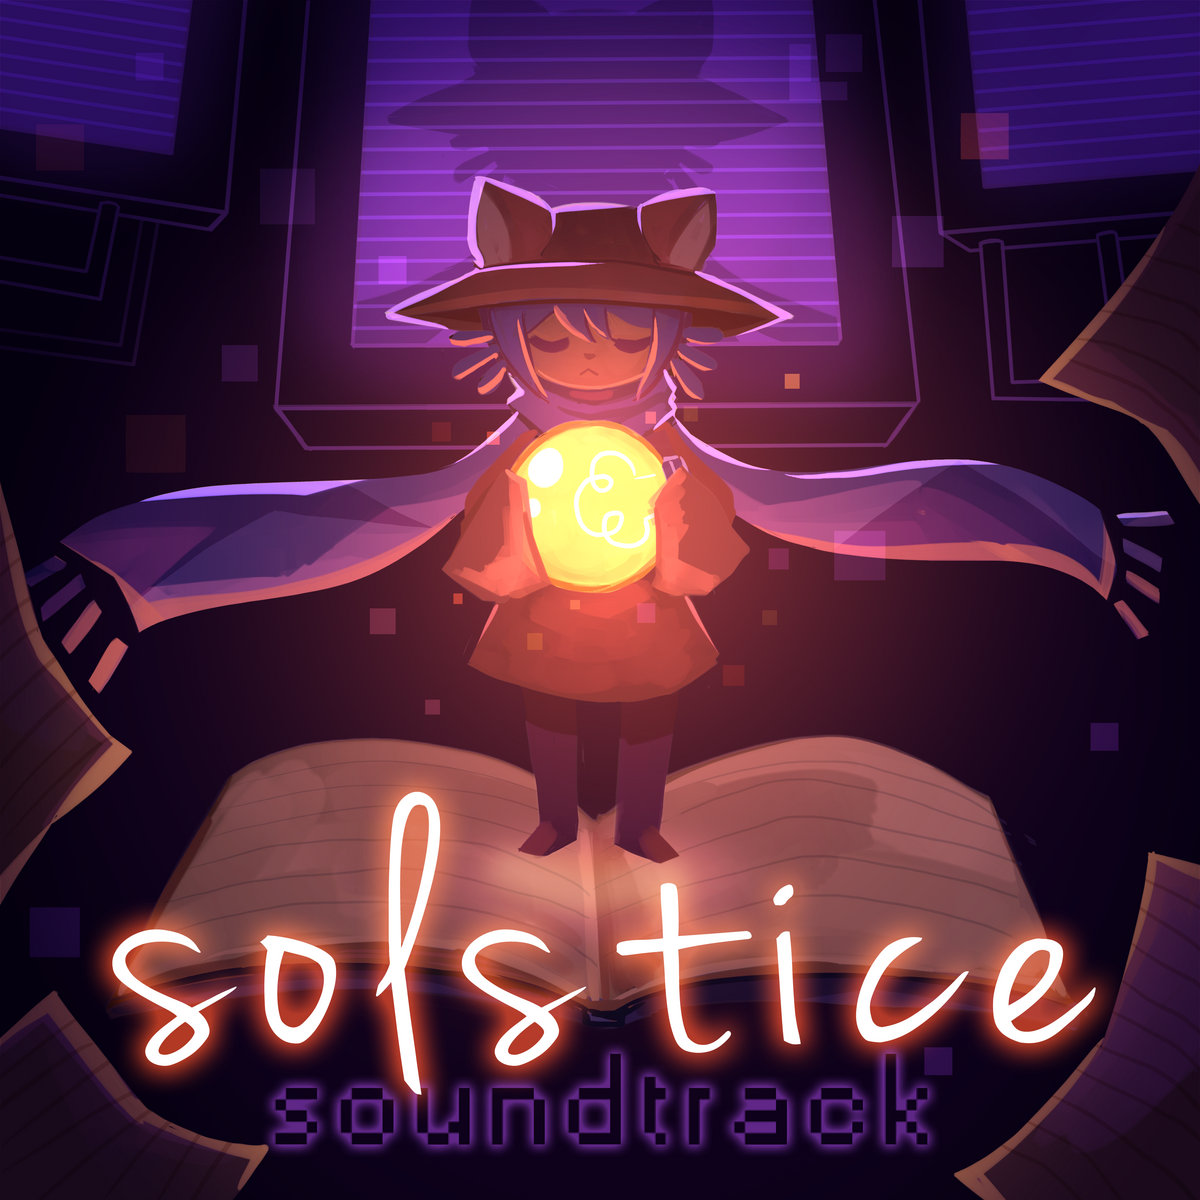 Oneshot: Solstice Soundtrack | Nightmargin